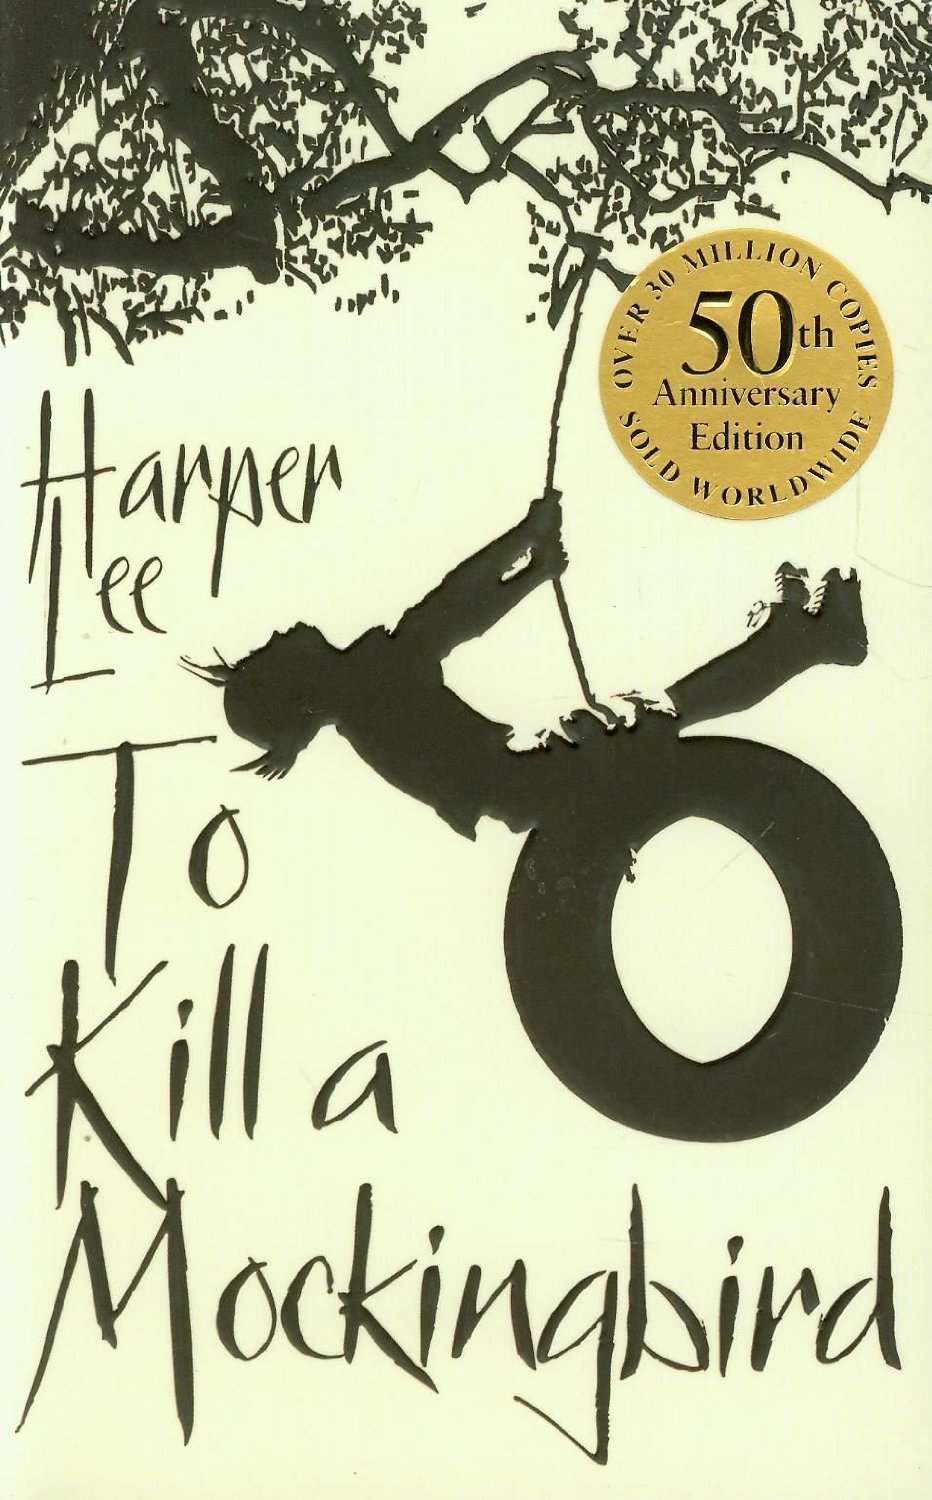 Classic Book Covers Posters : To kill a mockingbird book cover poster pixshark